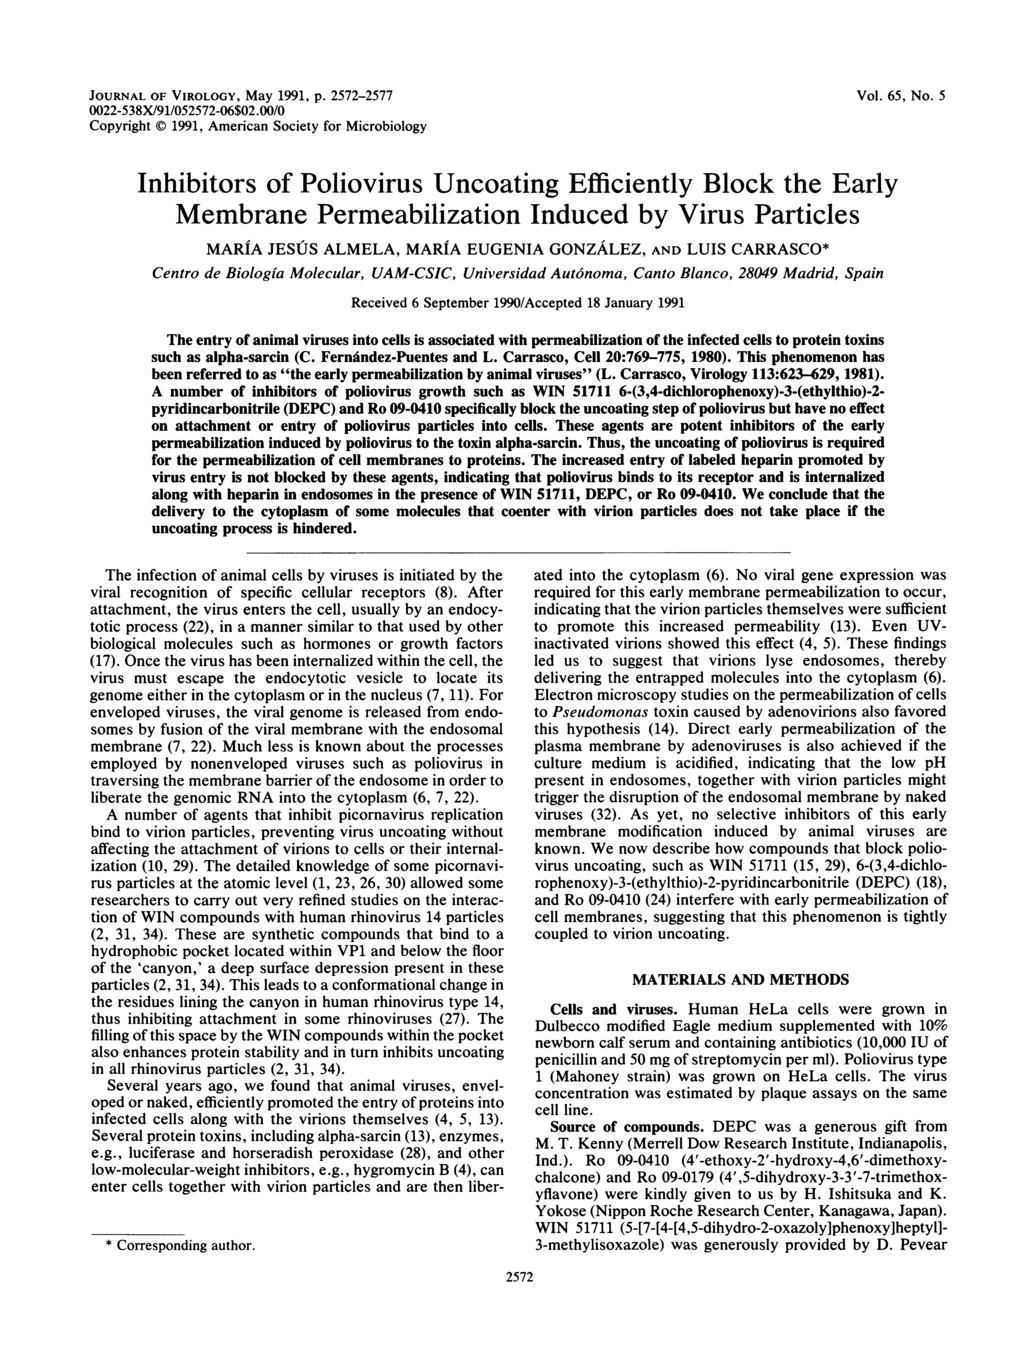 JOURNAL OF VIROLOGY, May 1991, P. 2572-2577 22-538X/91/52572-6$2./ Copyright 1991, American Society for Microbiology Vol. 65, No.